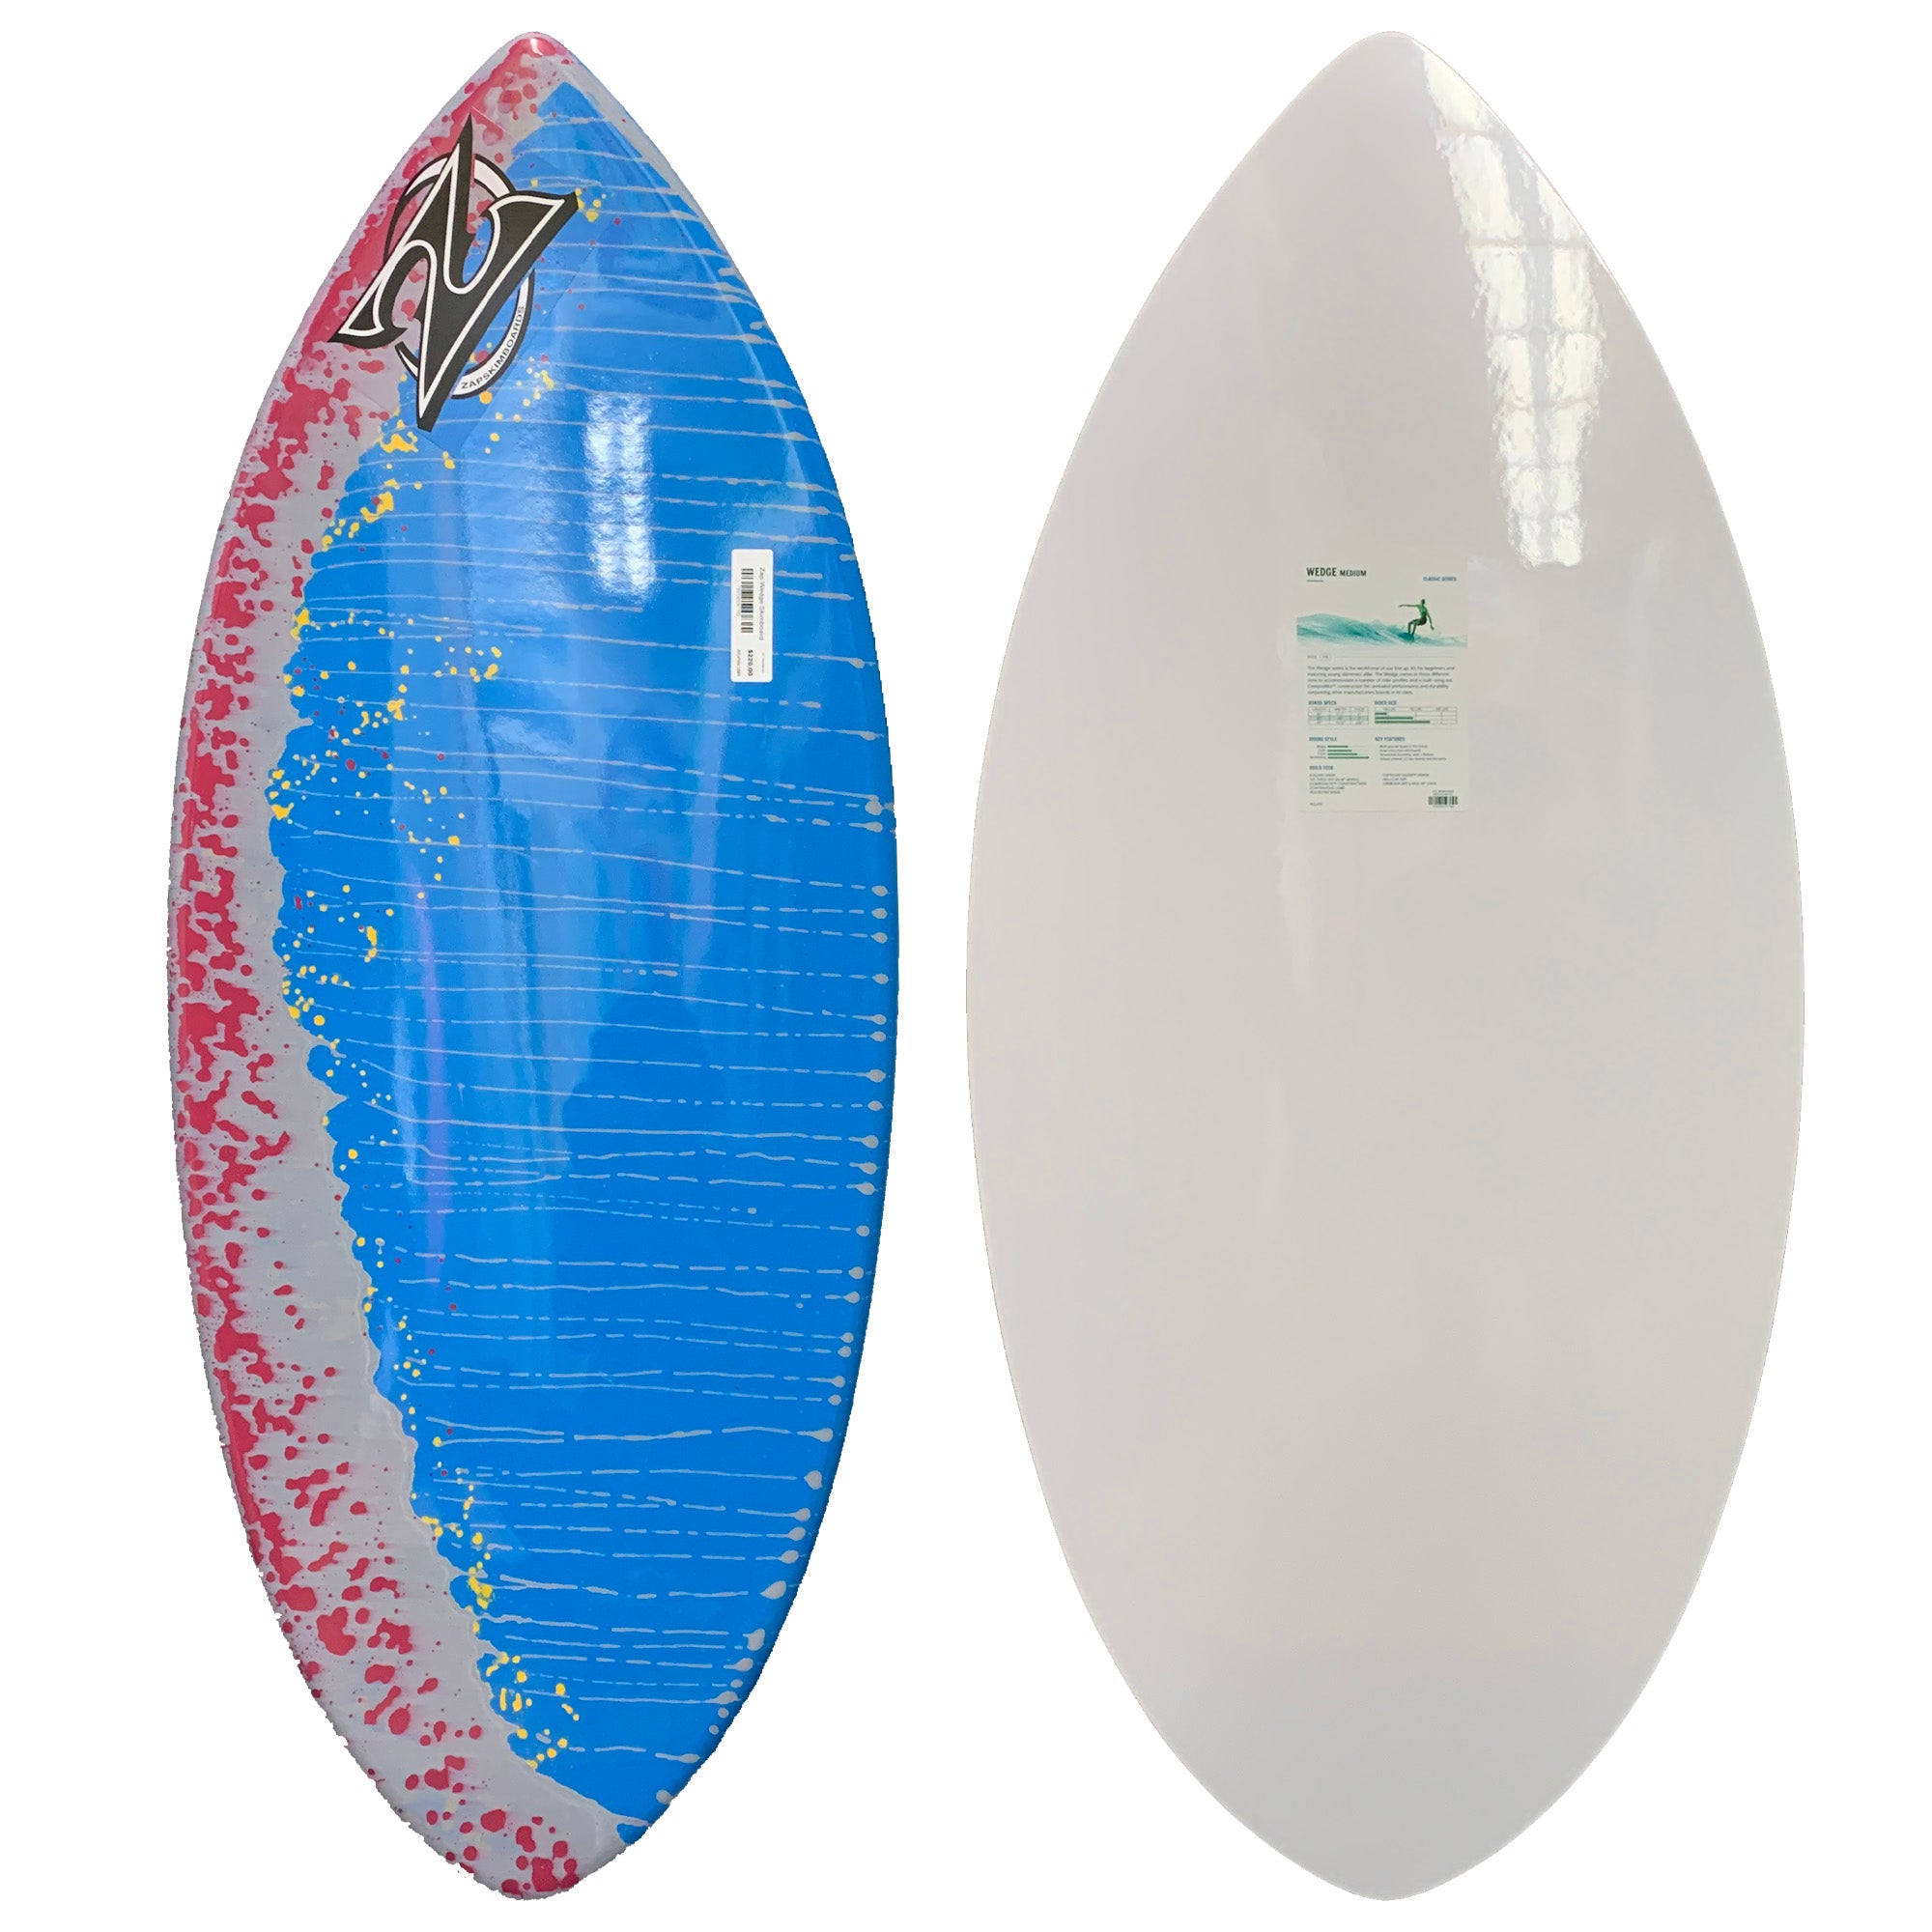 Zap Wedge Skimboard - Blue/Maroon